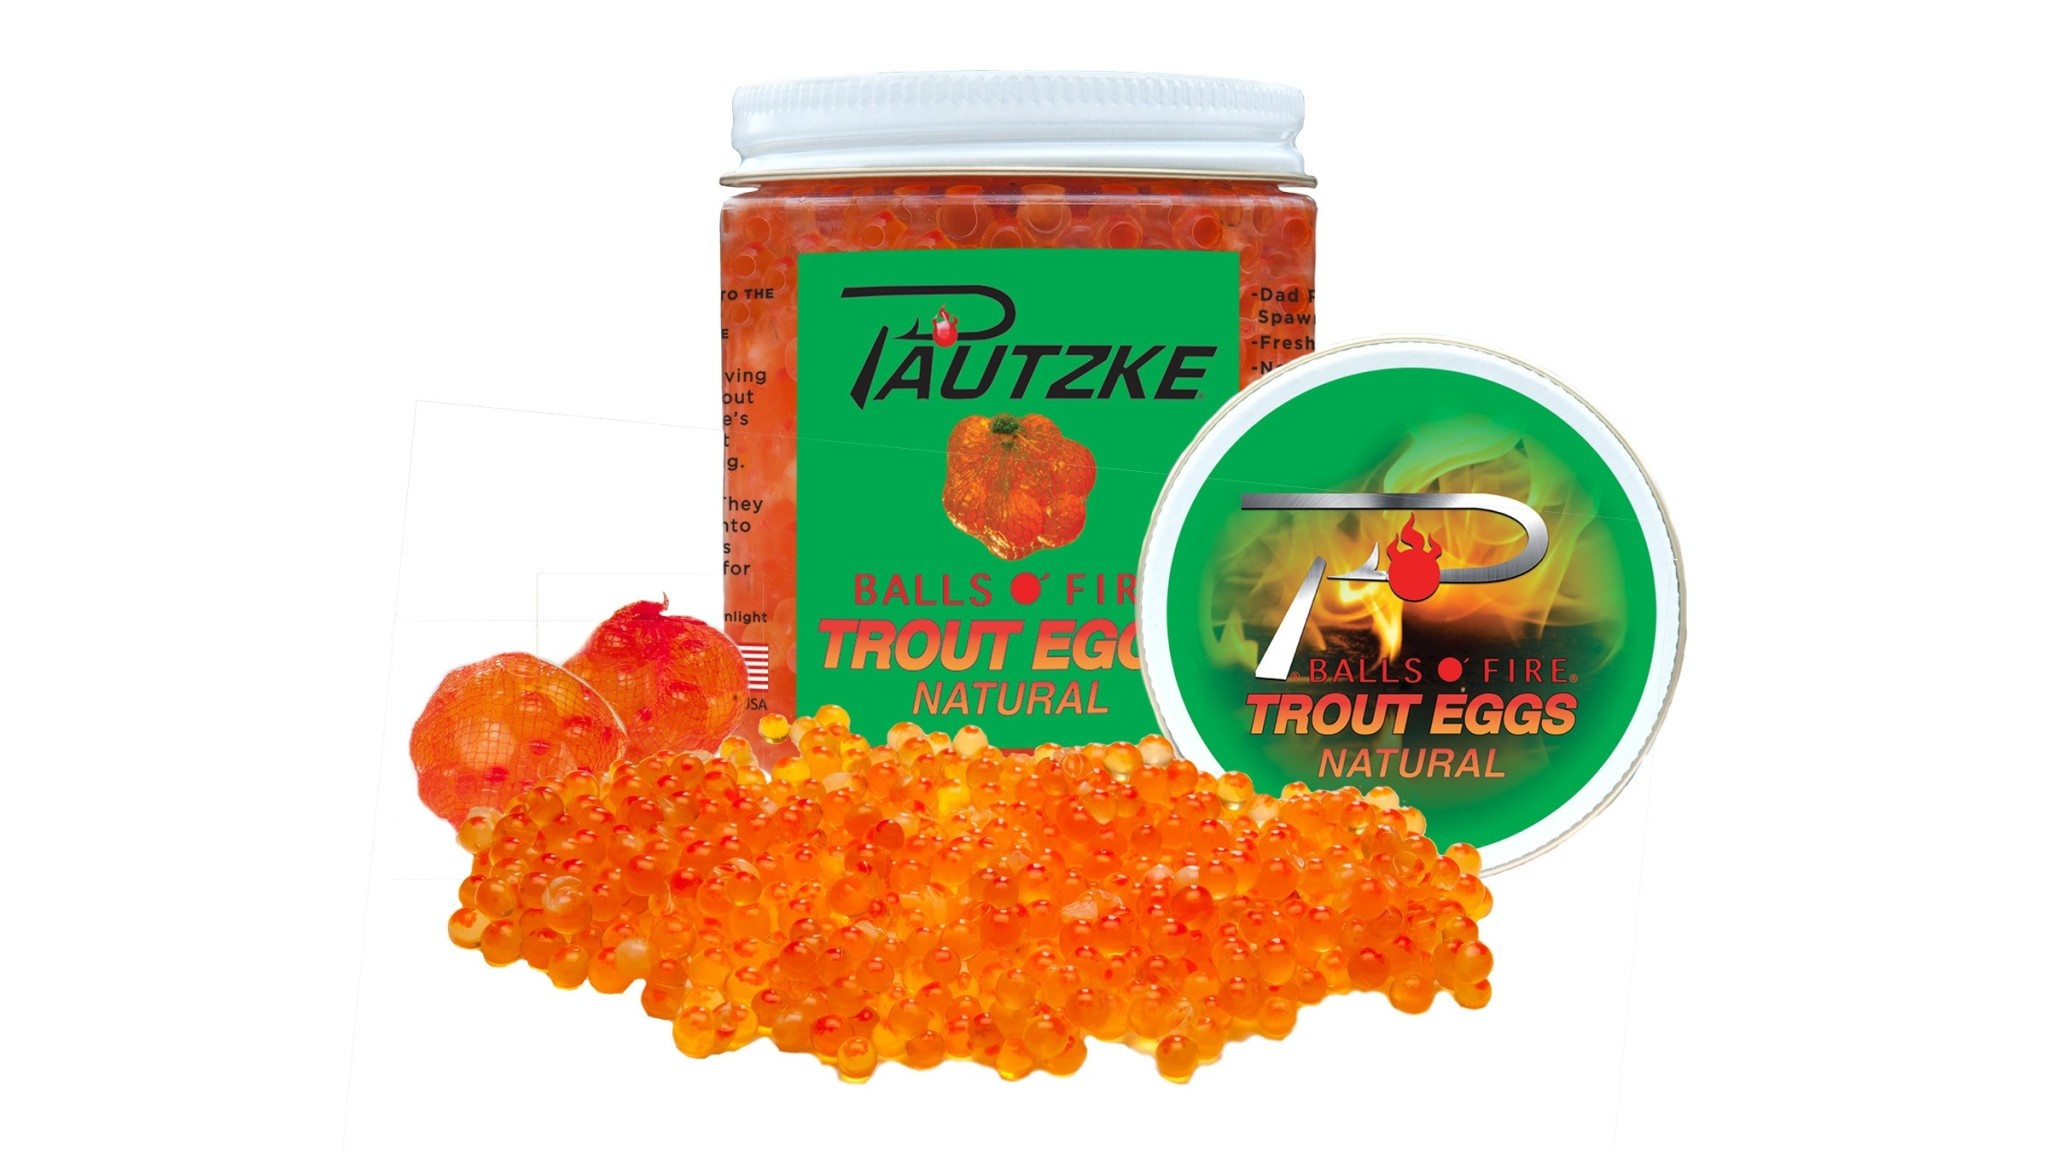 Pautzke Pautzke PTRT/NAT BALLS O' FIRE - Trout Eggs, Natural, Can be colored